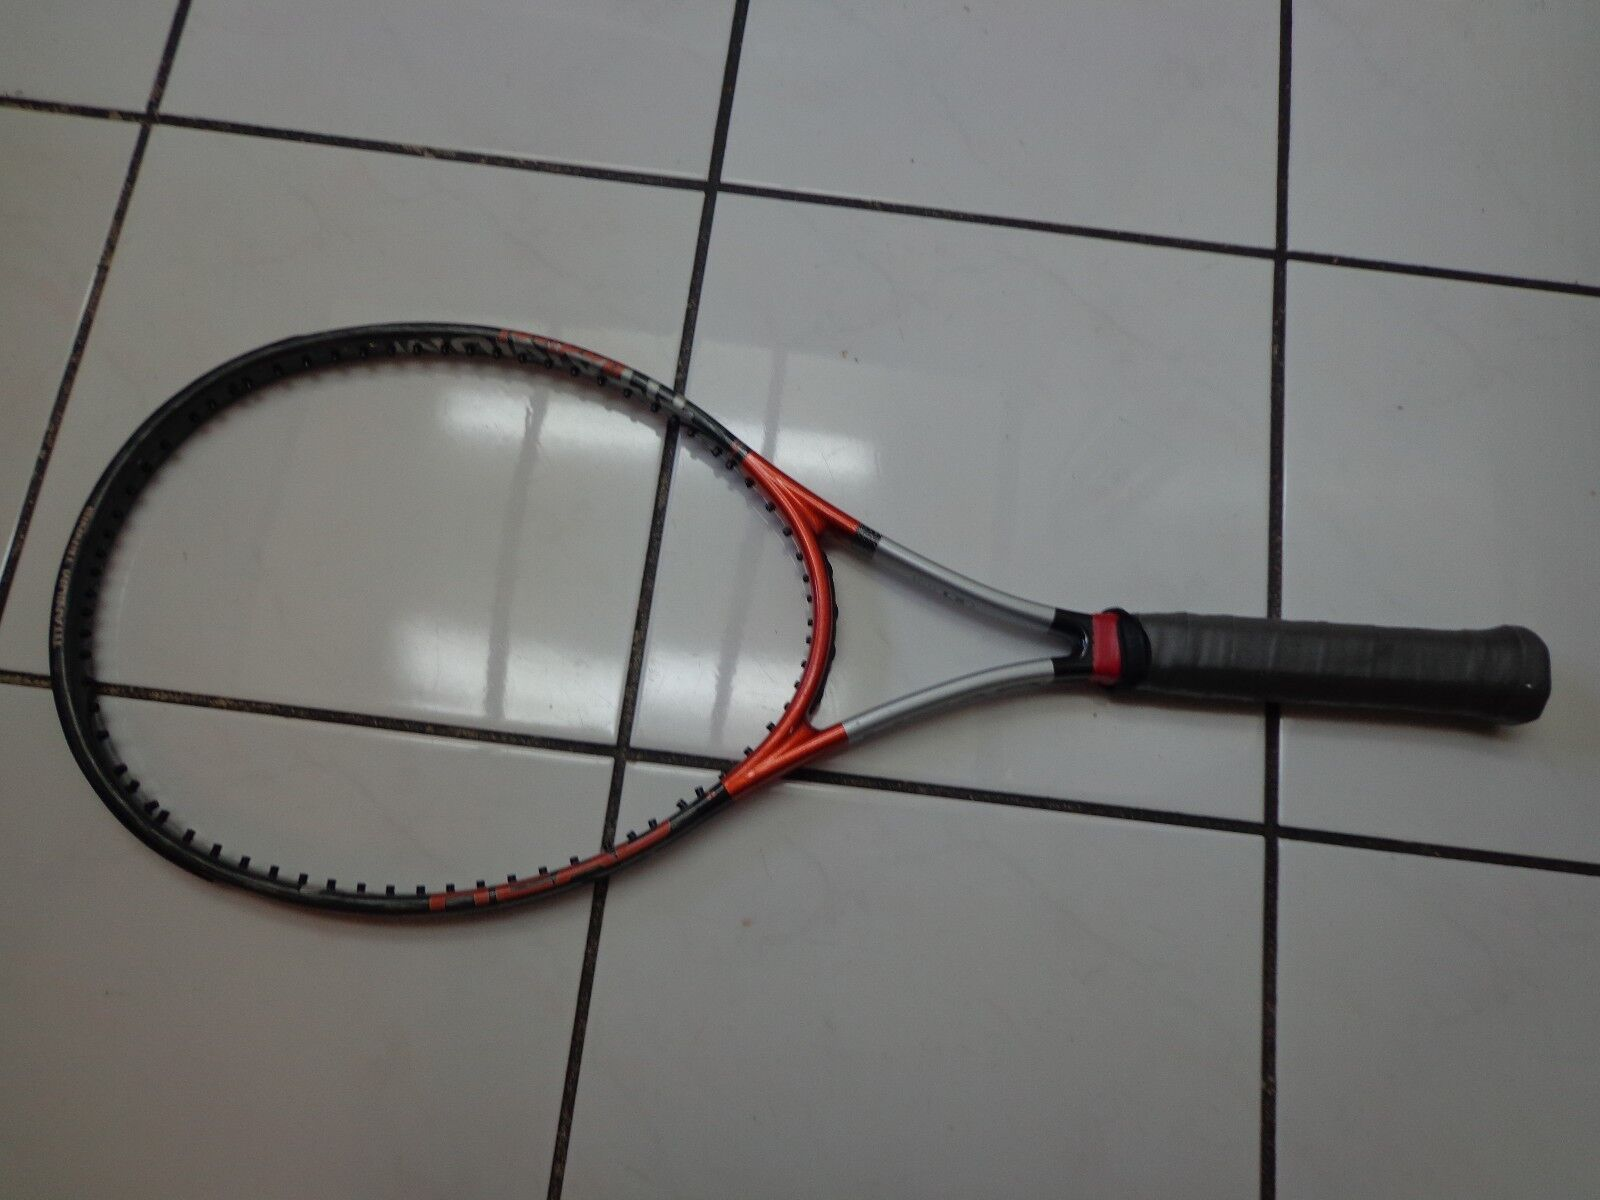 Head Ti. Radical OverTaille agassi 107head 4 5 8 grip Tennis Racquet